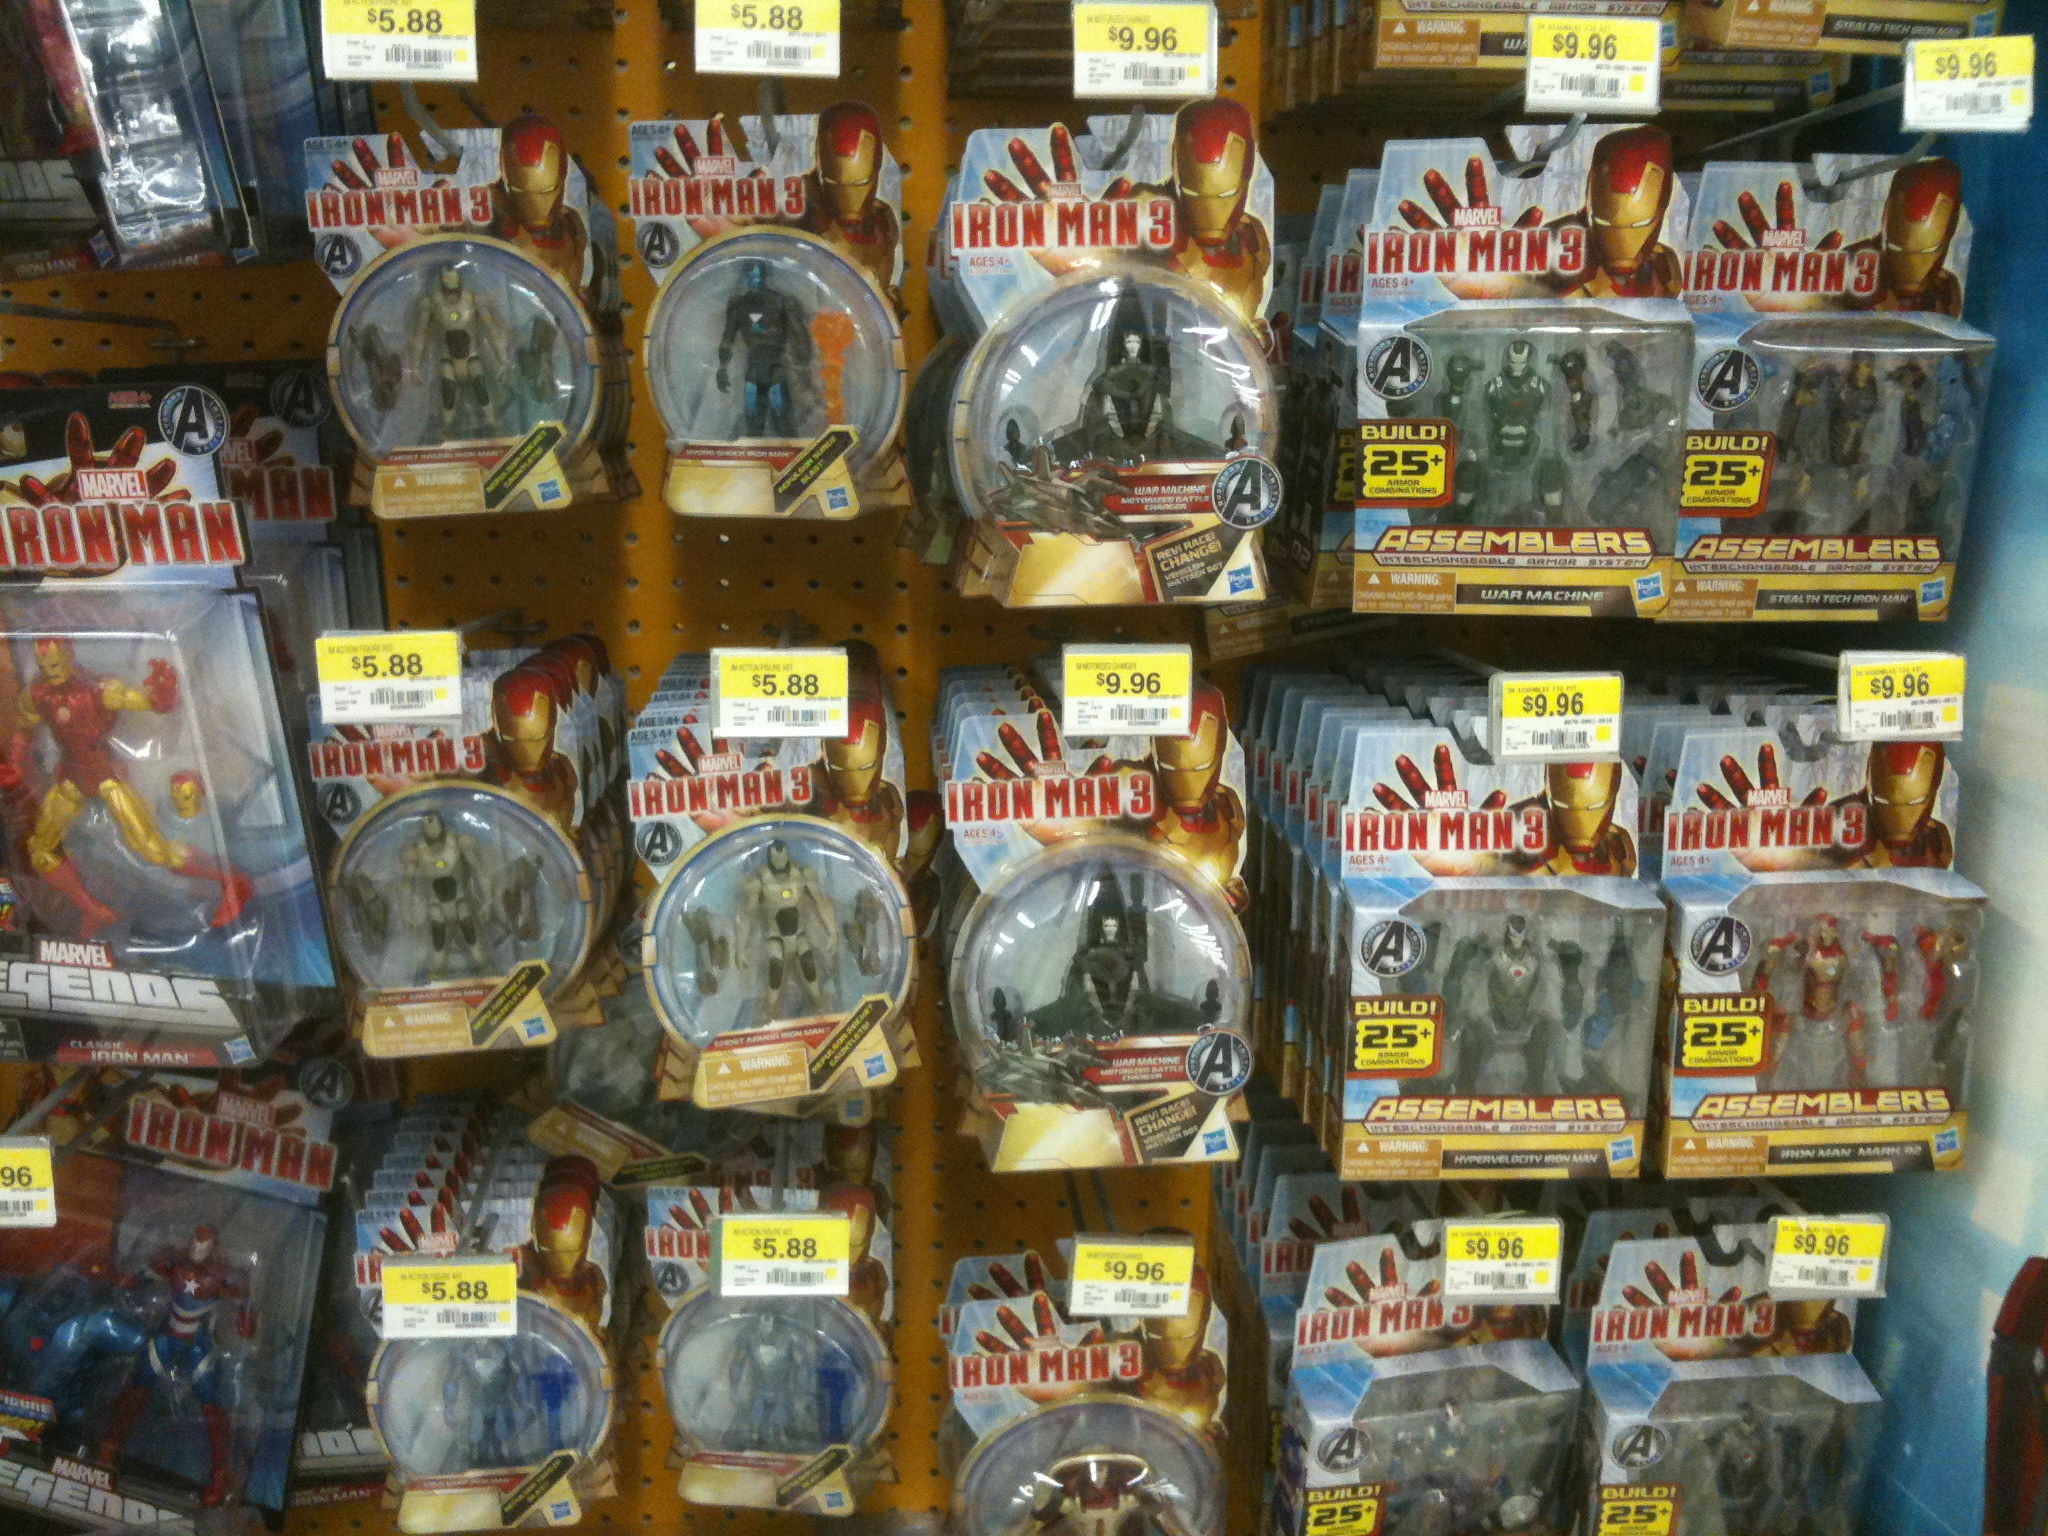 Toys From Walmart : Unique toys at stores images children ideas